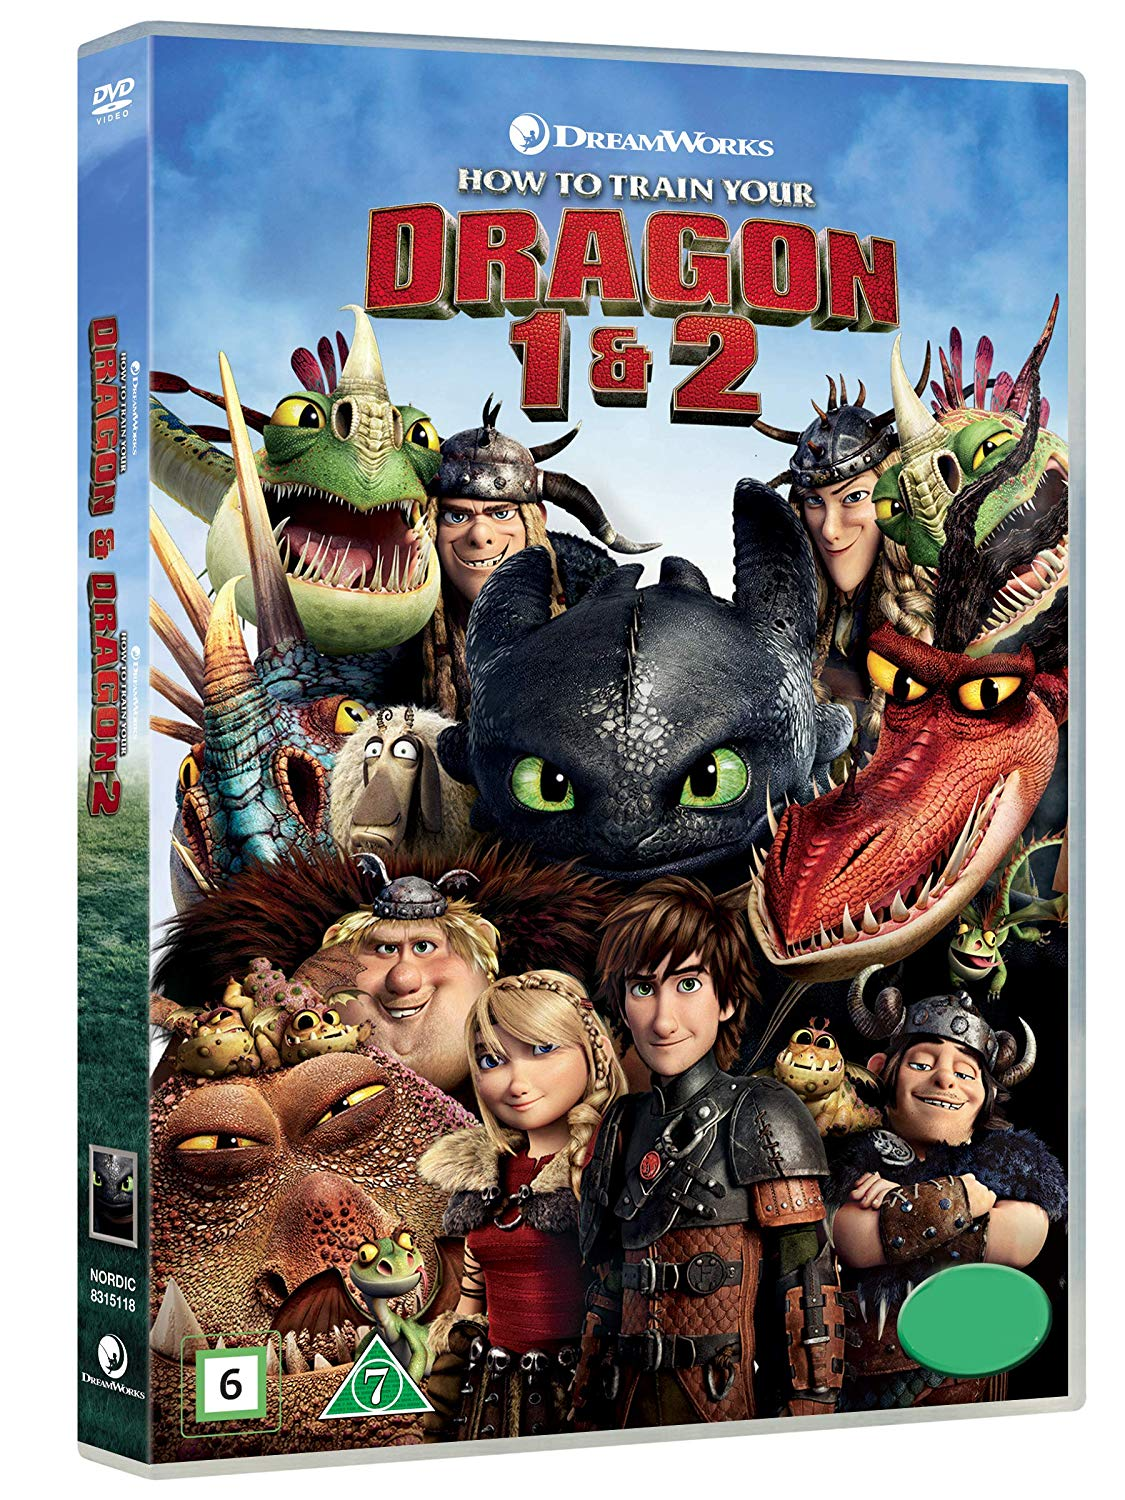 COF.DRAGON TRAINER COLLECTION (2 DVD) (DVD)